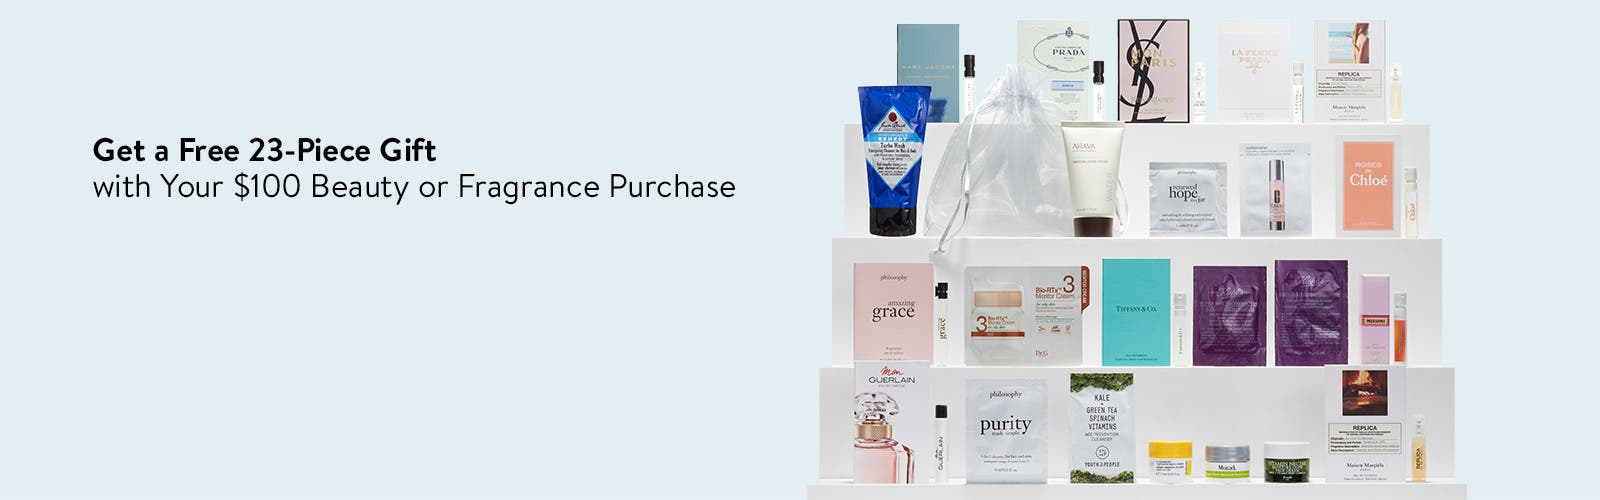 Get a free 23-piece gift with $100 beauty or fragrance.